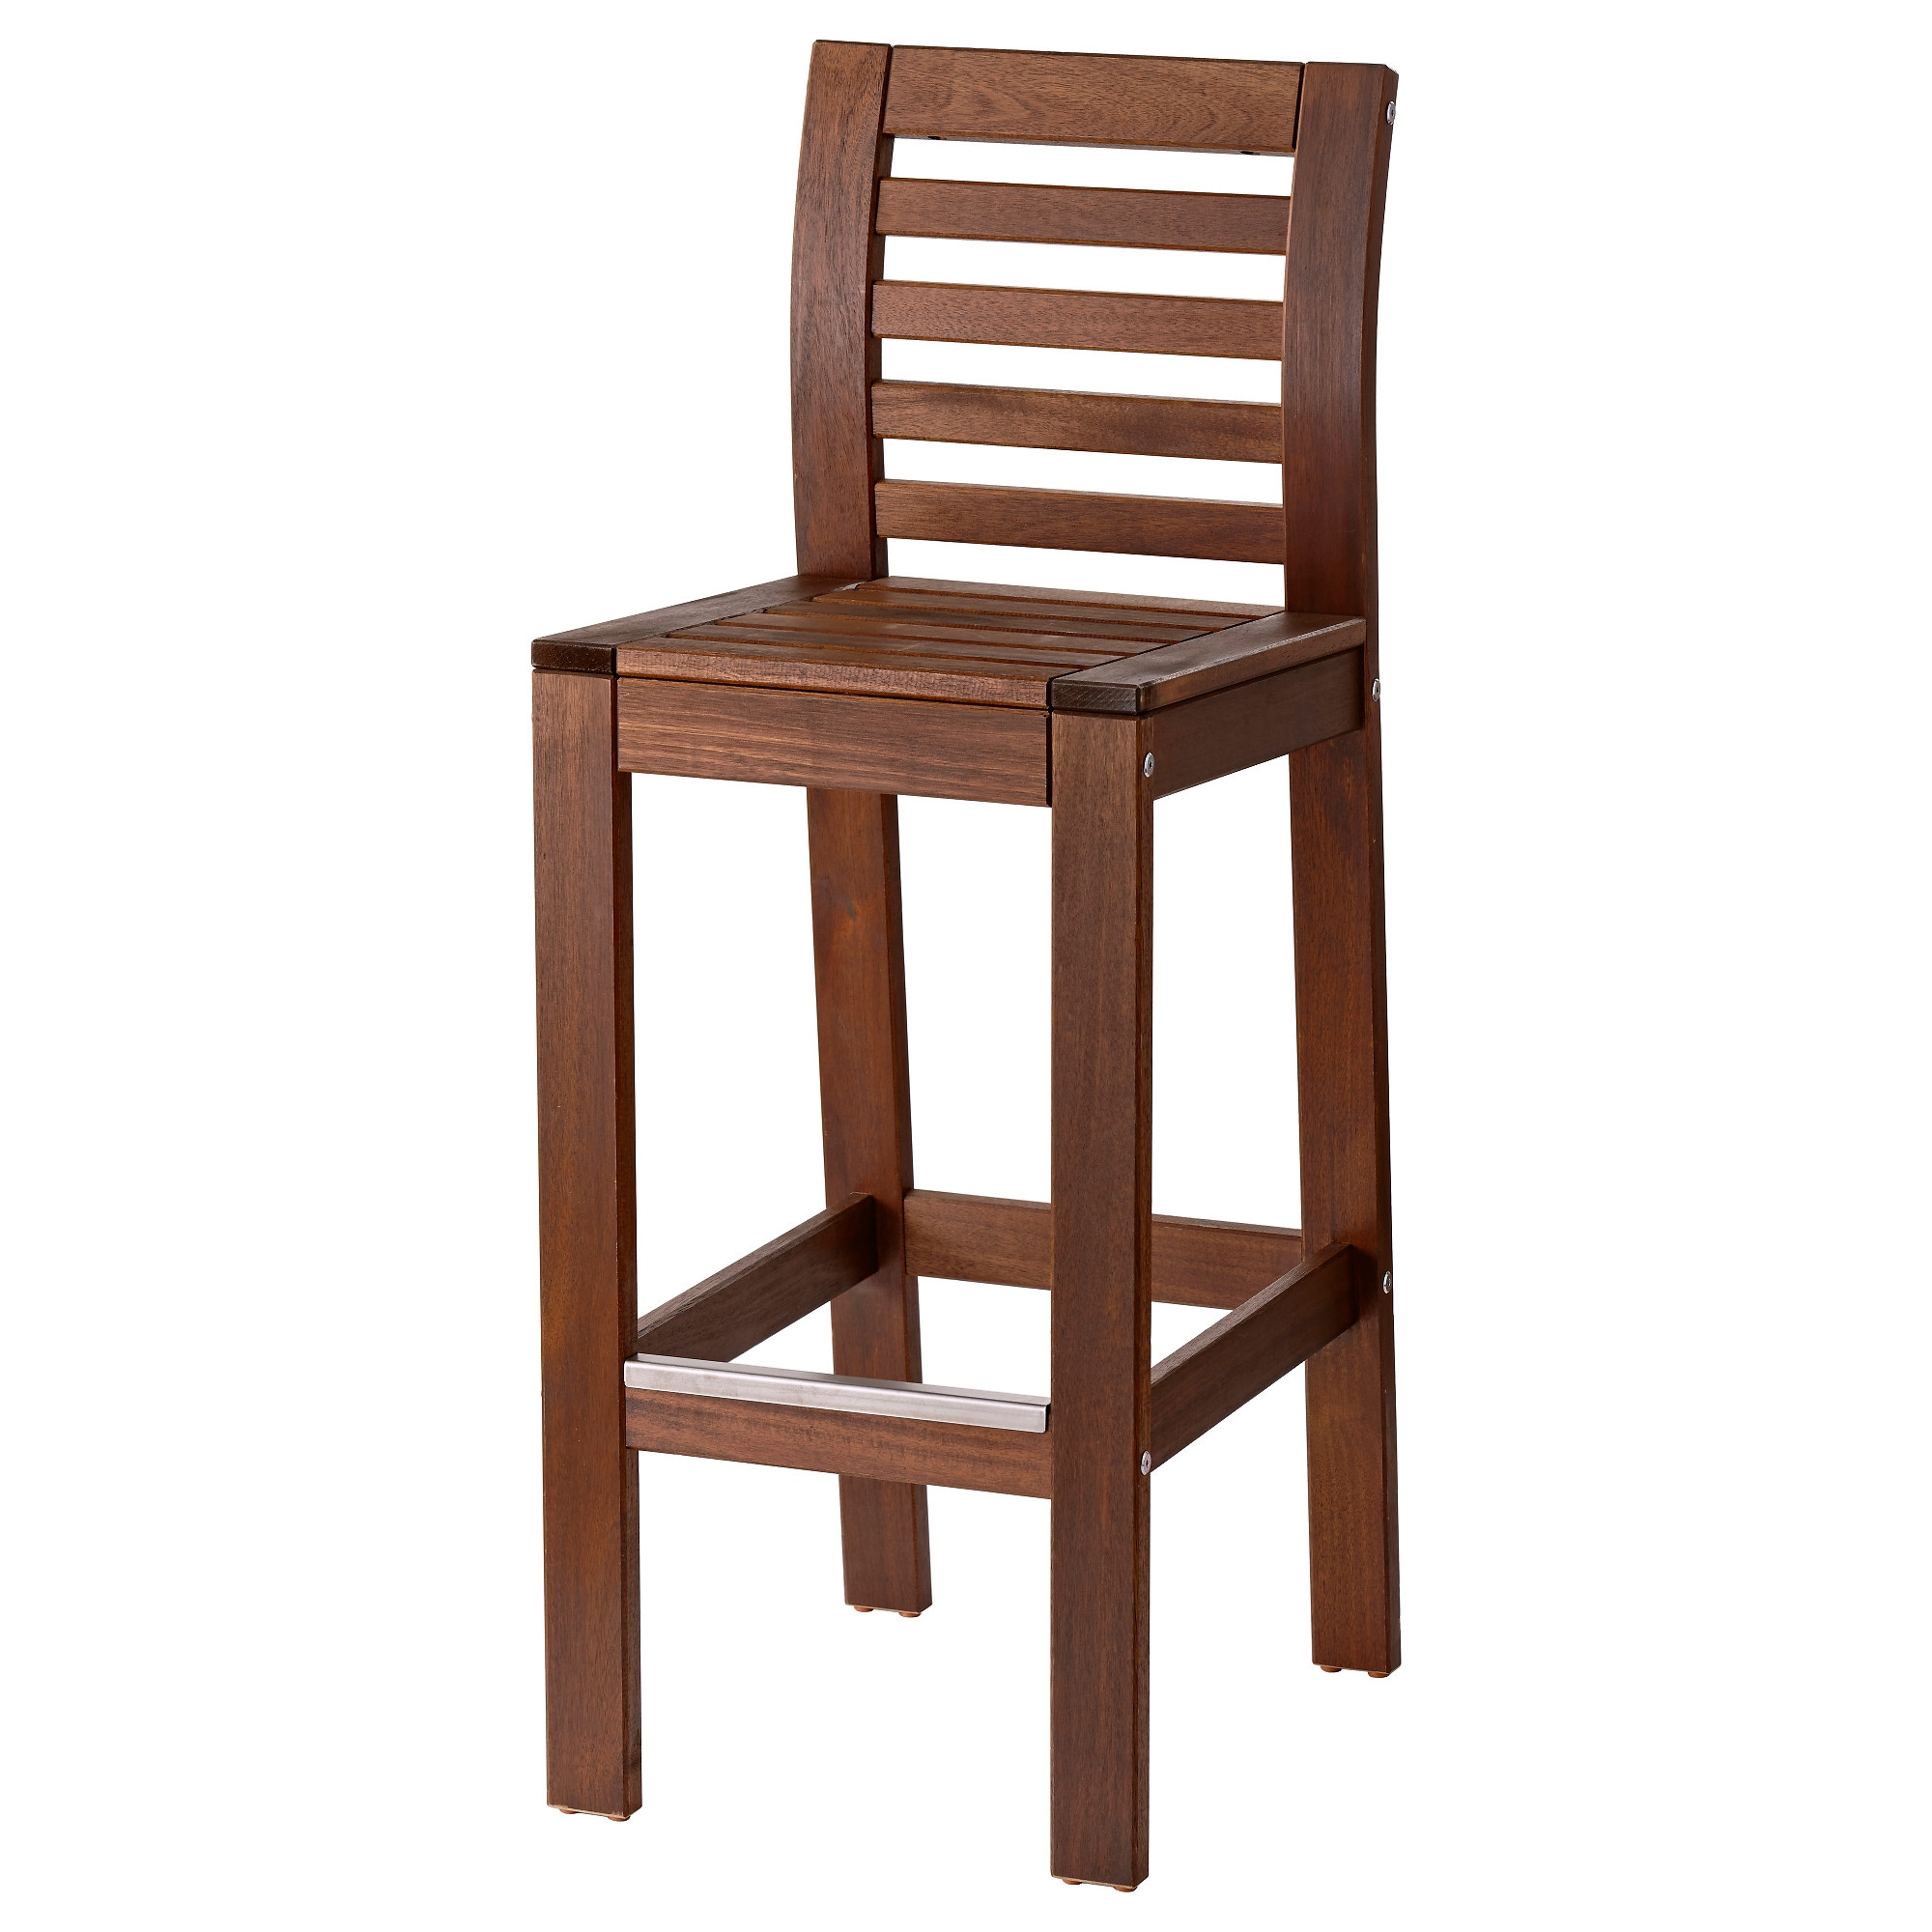 PPLAR  bar stool with backrest  outdoor  brown stained Width  15 3 4Outdoor dining chairs   IKEA. High Back Dining Chairs Ikea. Home Design Ideas